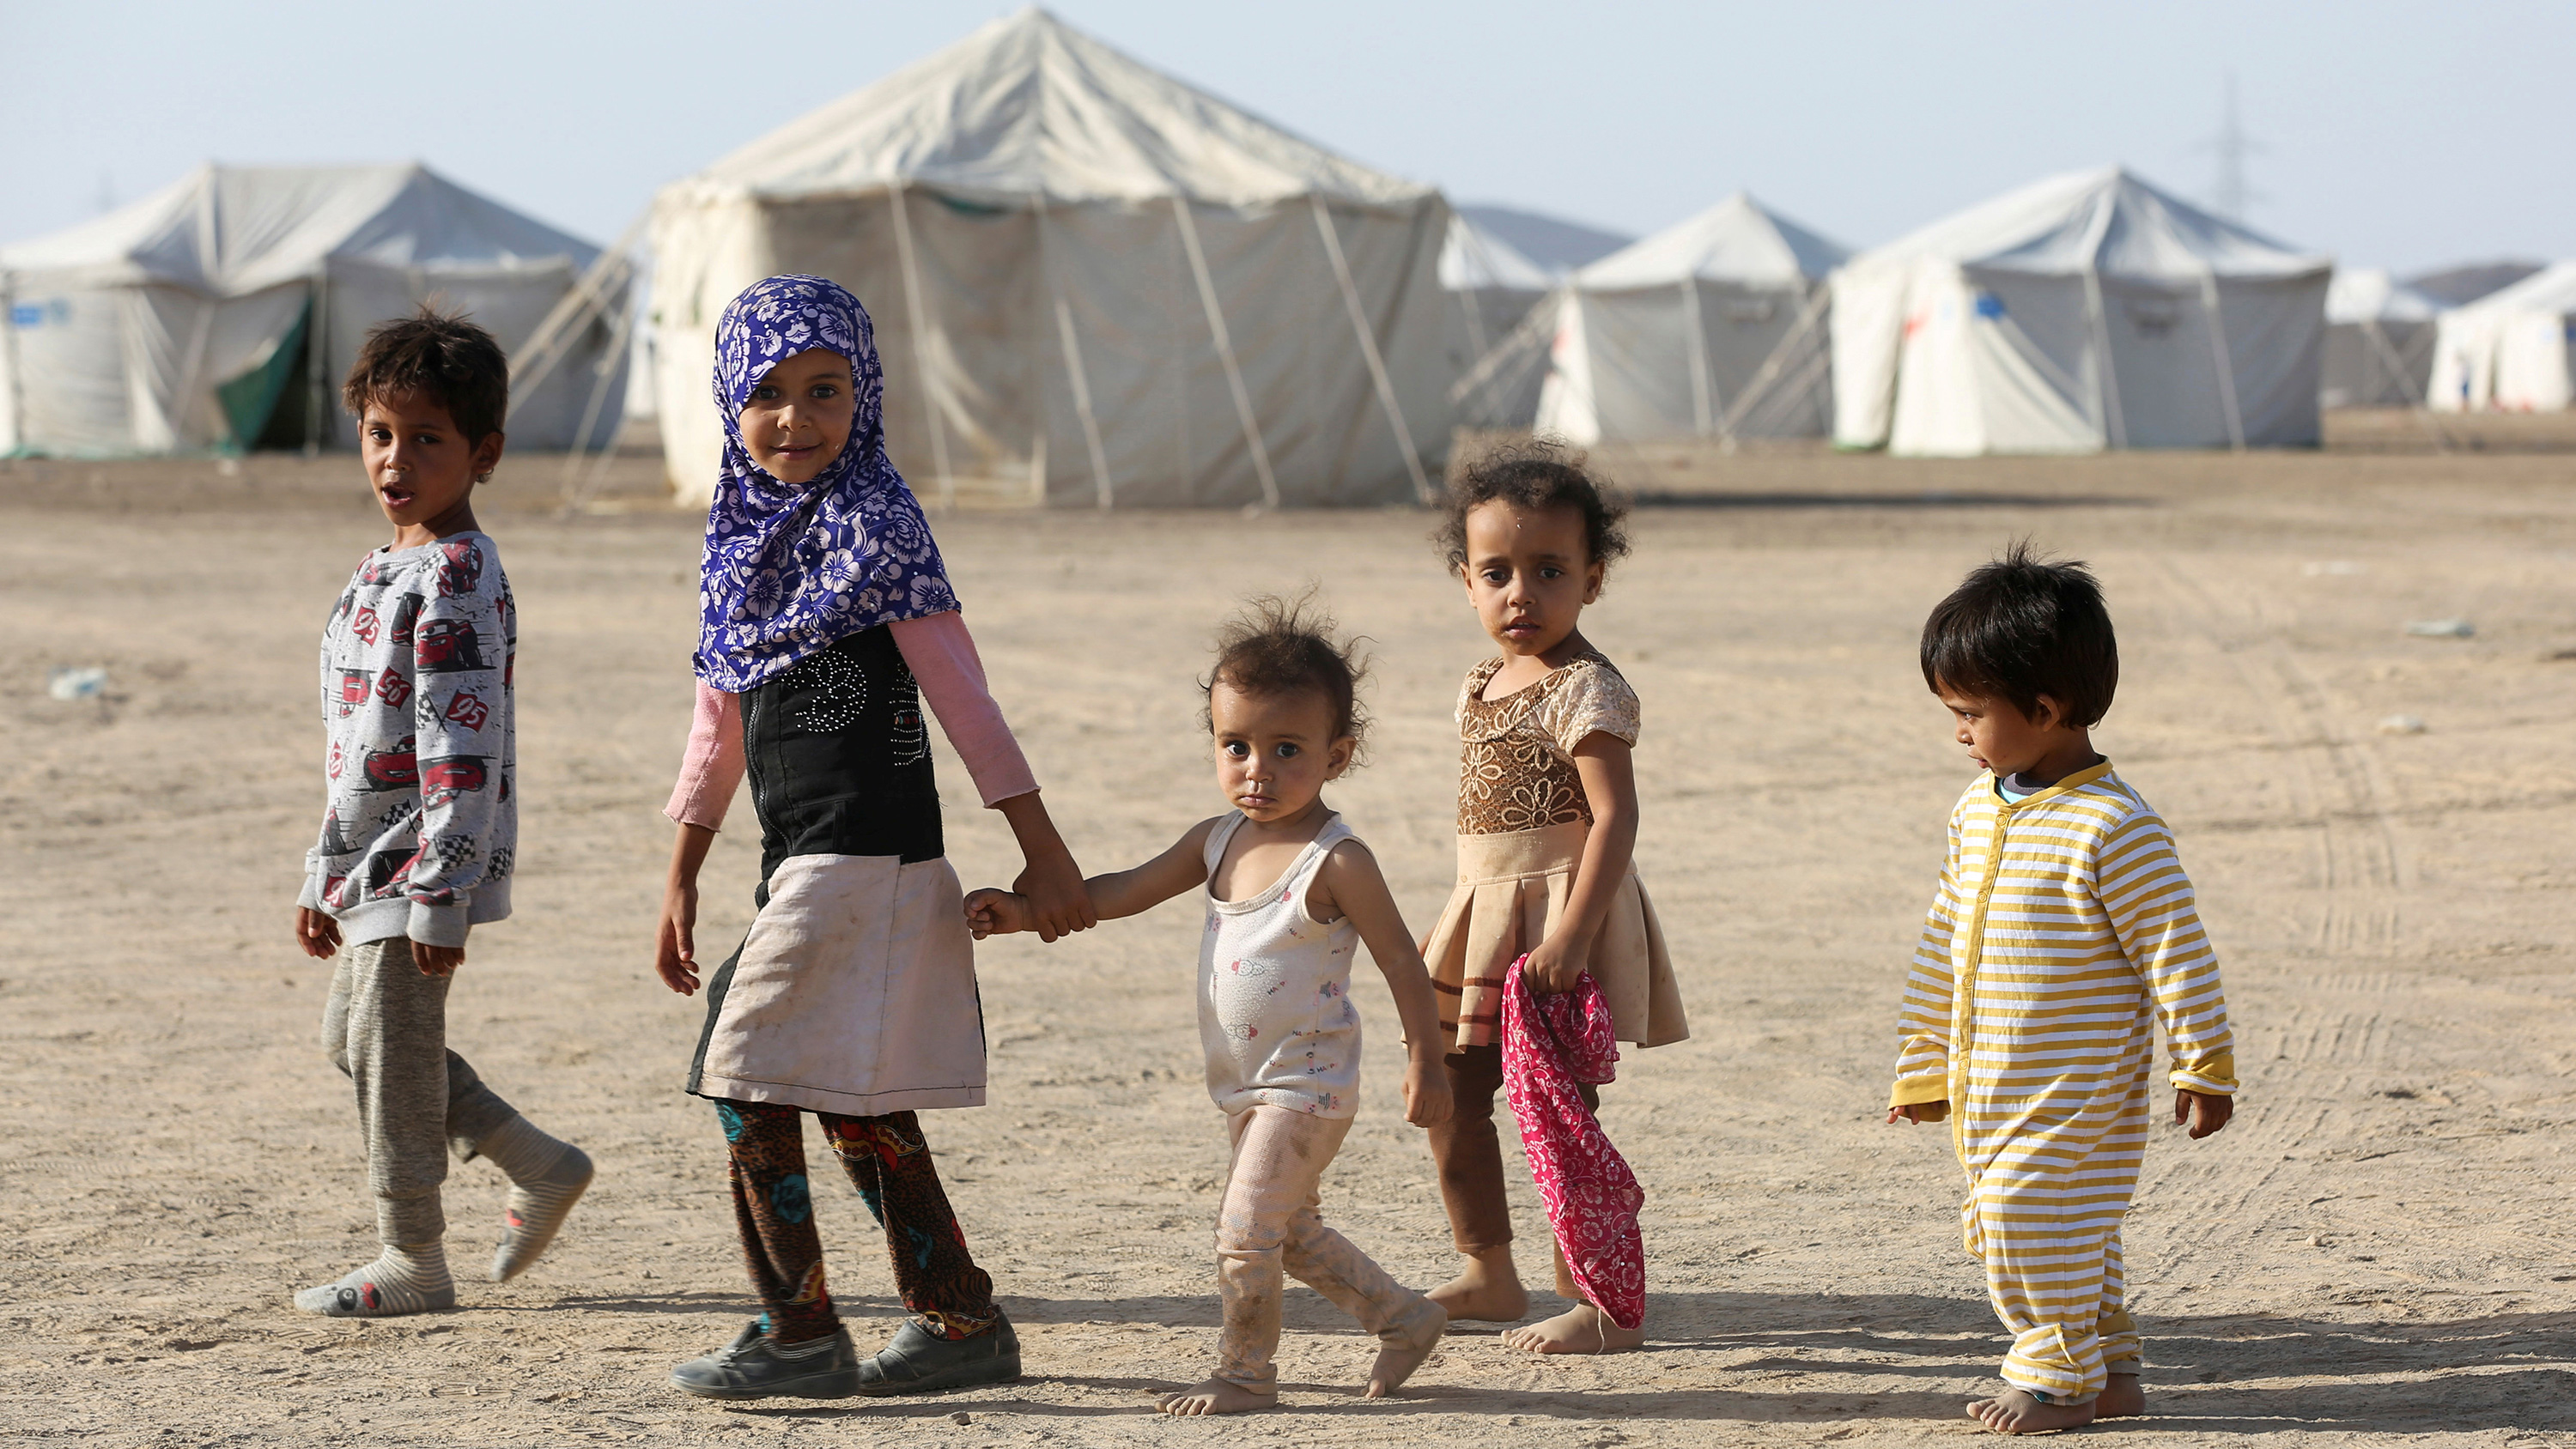 Picture shows a line of five children walking together in front of a camp filled with white tents and looking at the camera. All are very young, two who appear under eight years old, and three who appear under five.